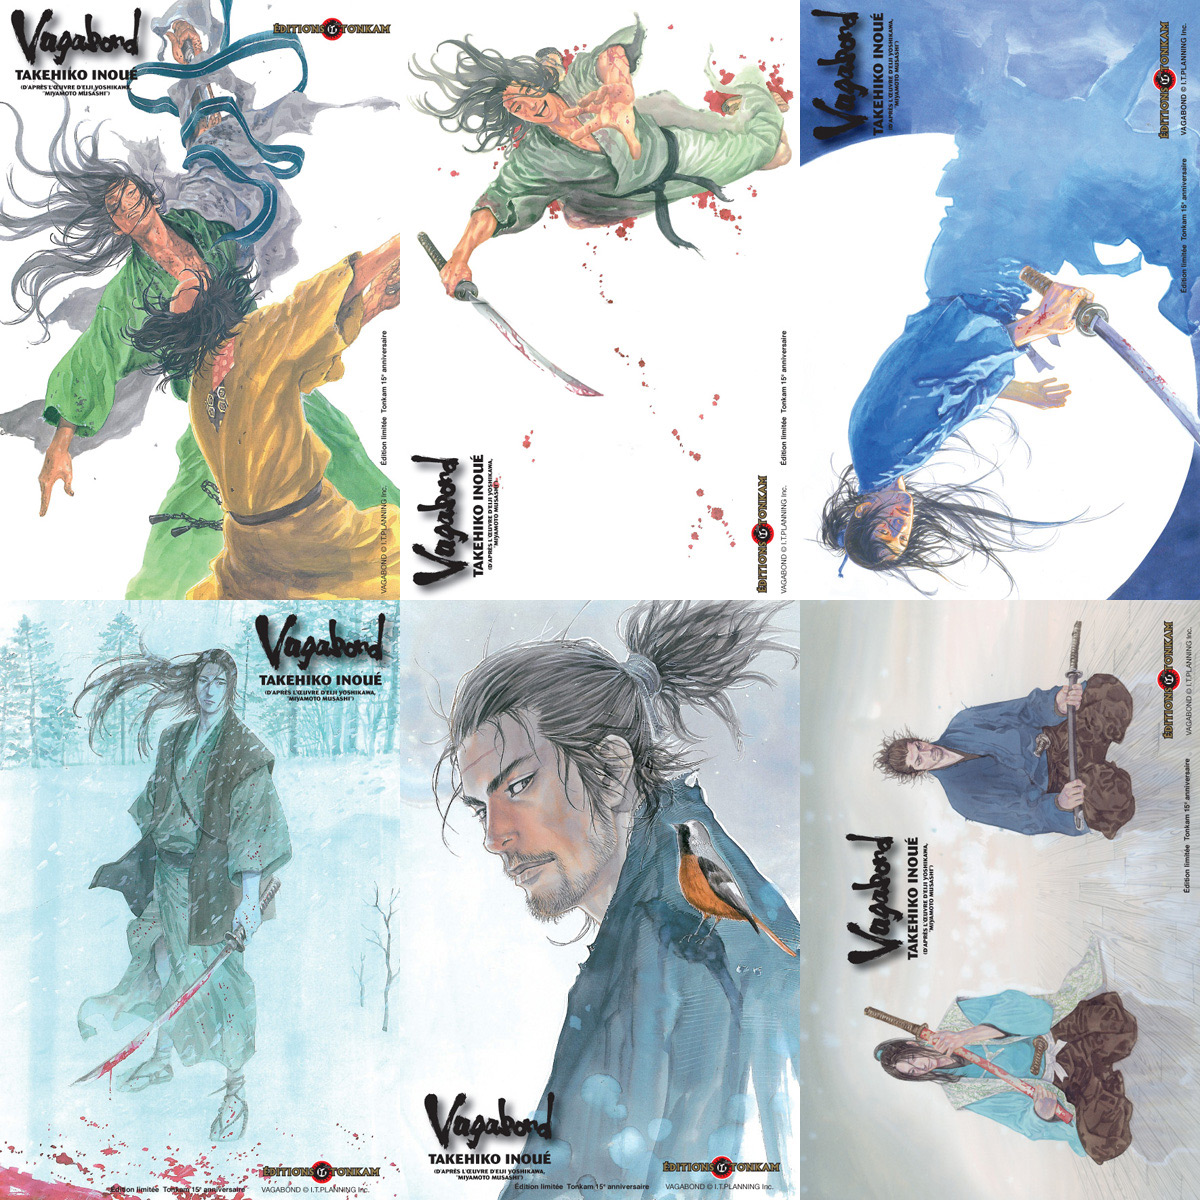 1000 Ideas About Vagabond Manga On Pinterest: 1000+ Images About Vagabond By Takehiko Inoue. On